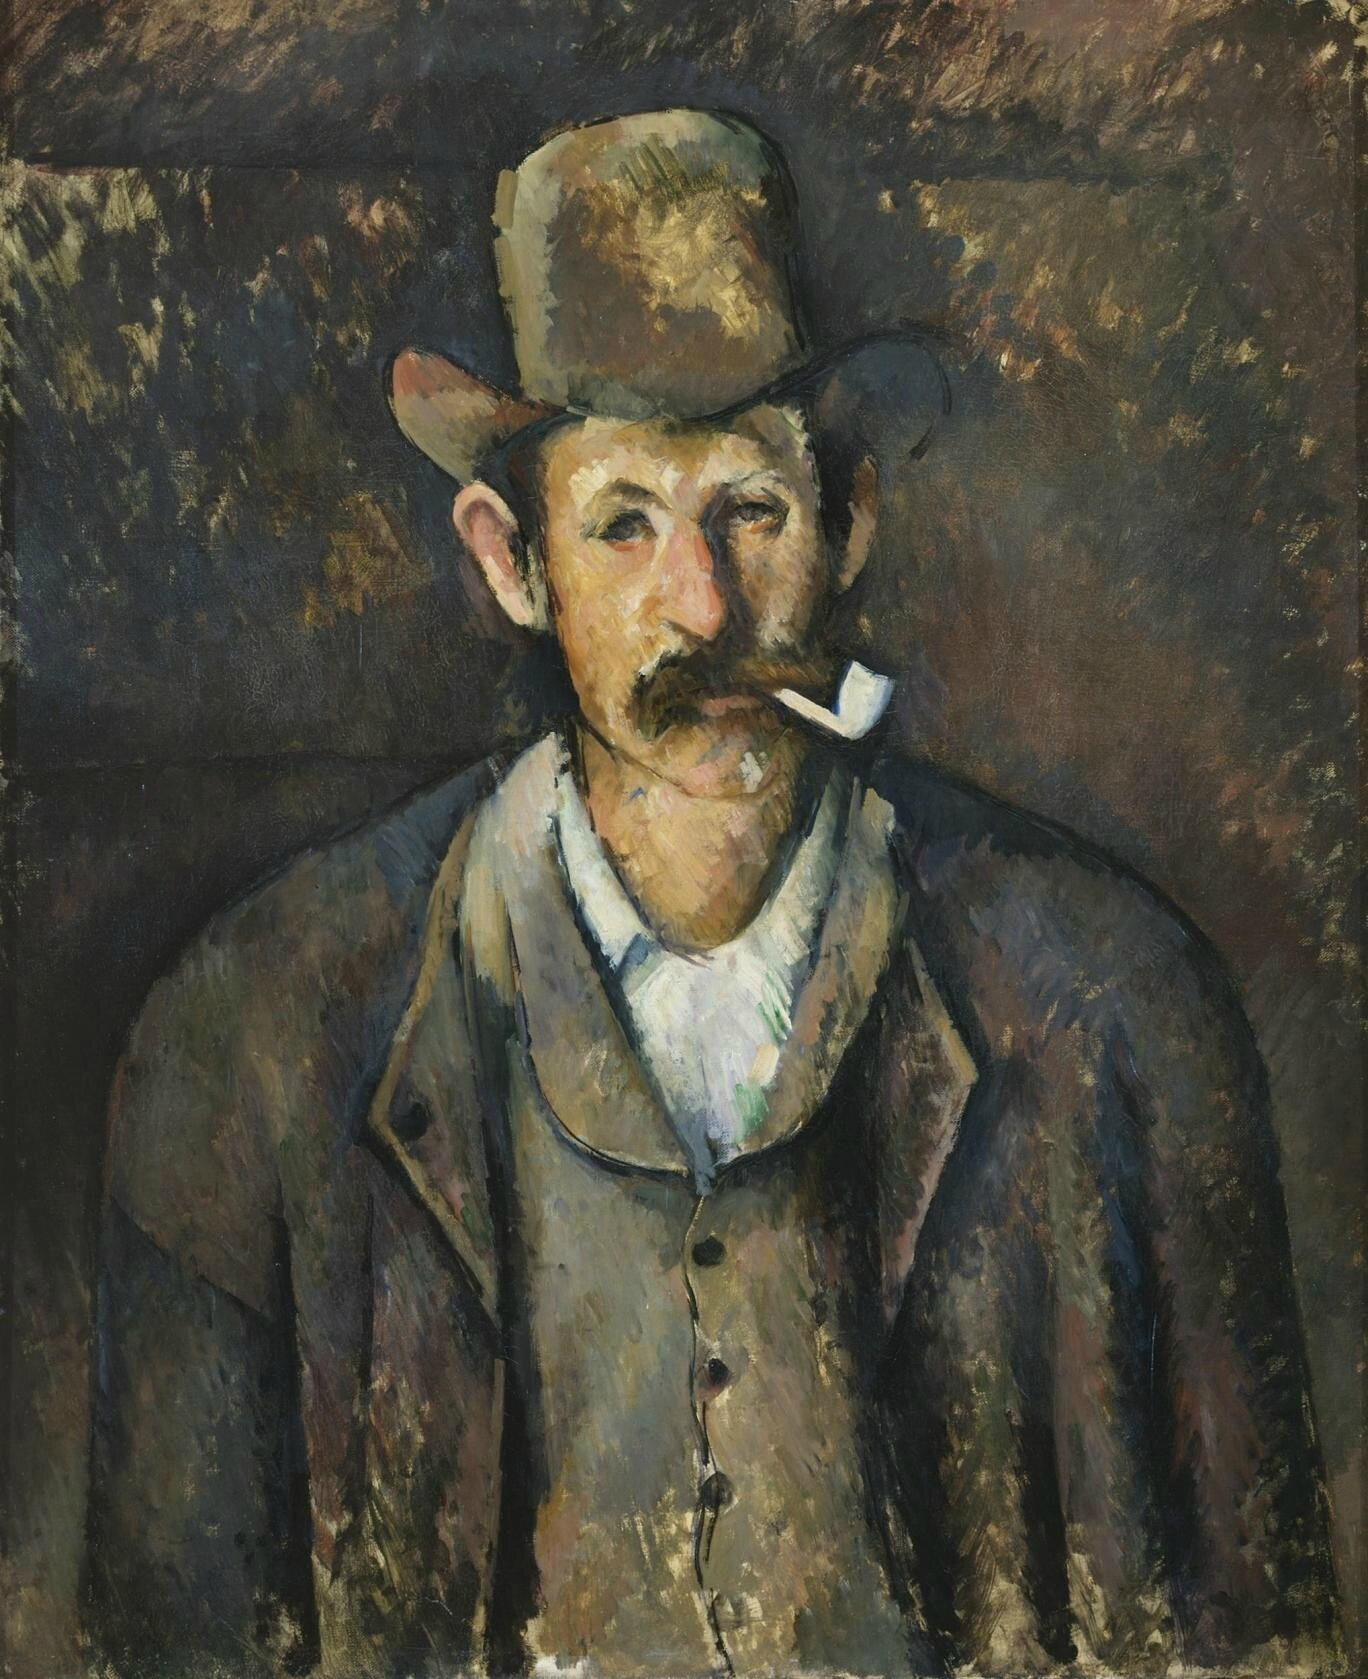 Self portraits by Cézanne go on public display for the first